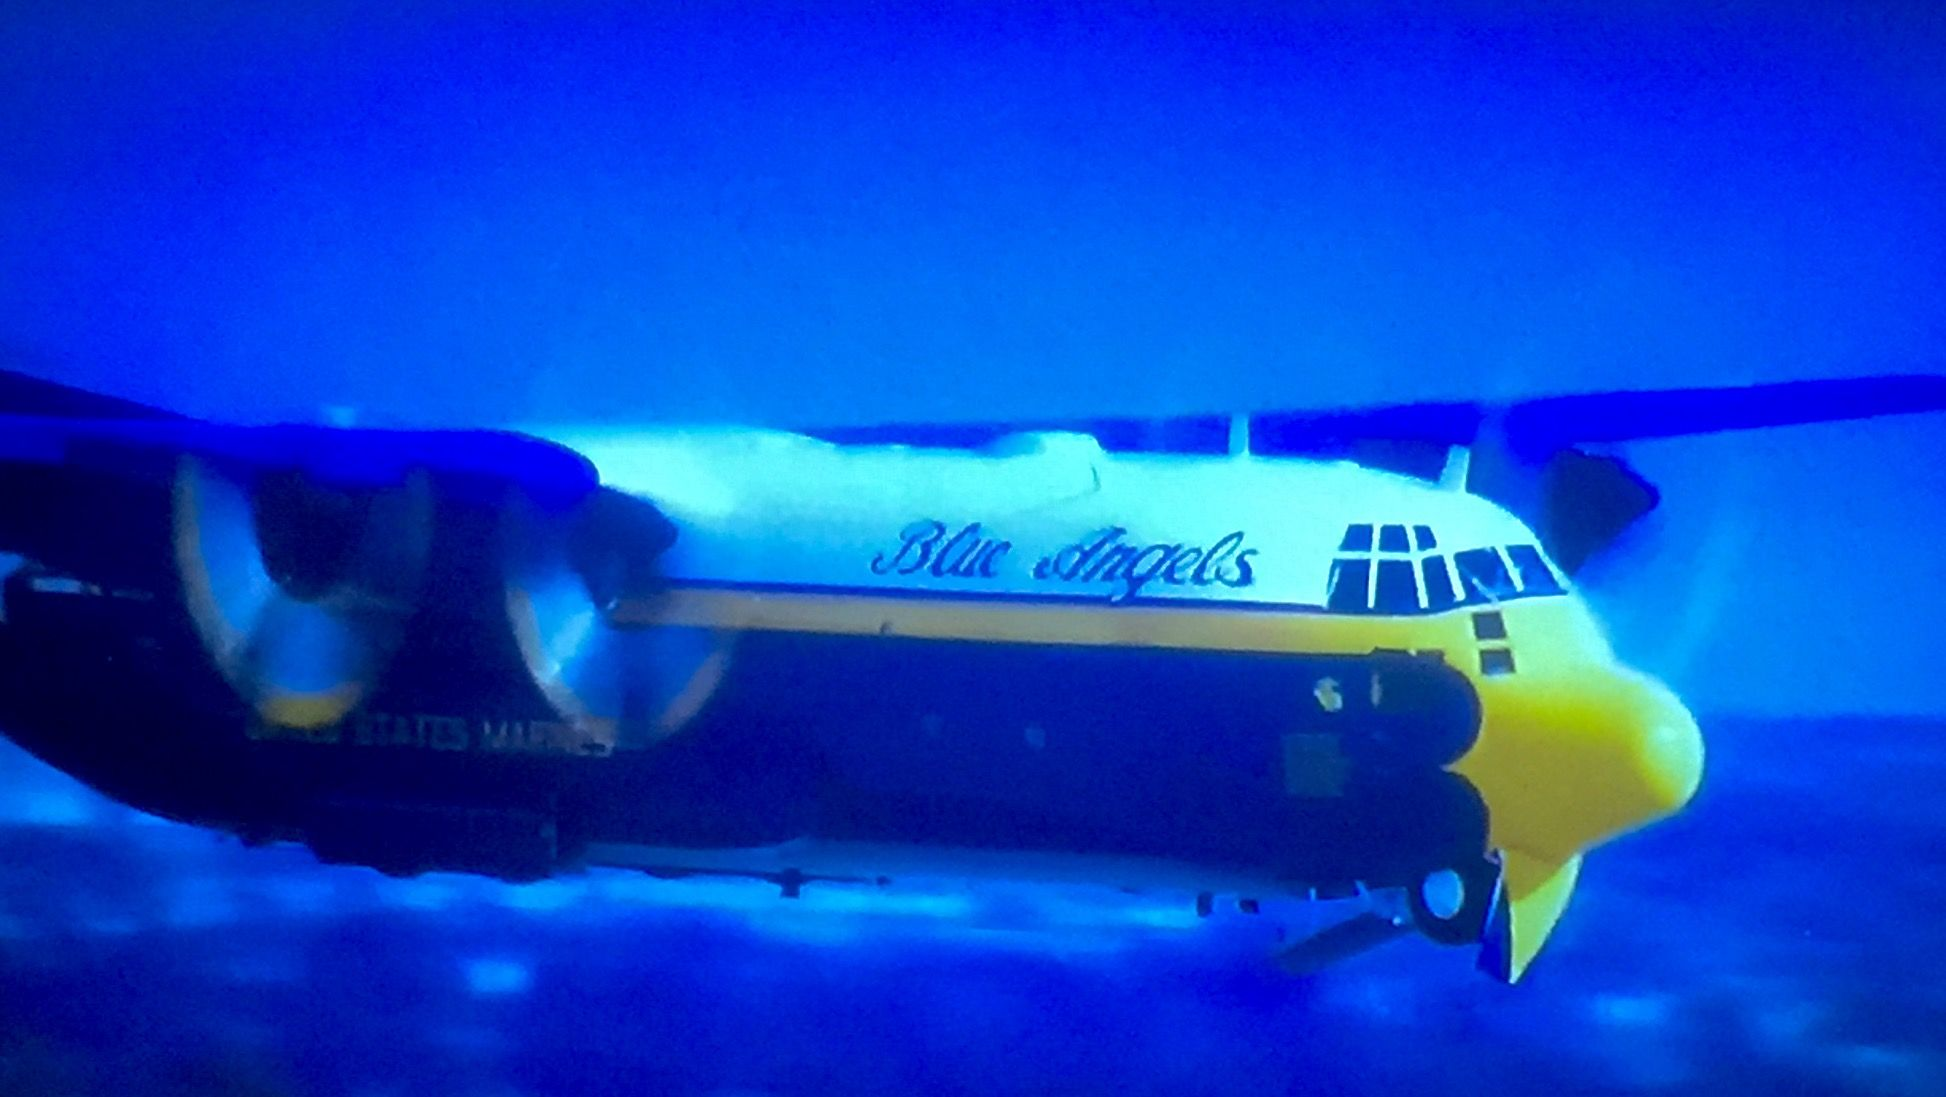 Pin by Paulie on Blue Angels Blue angels, C 130, Airship